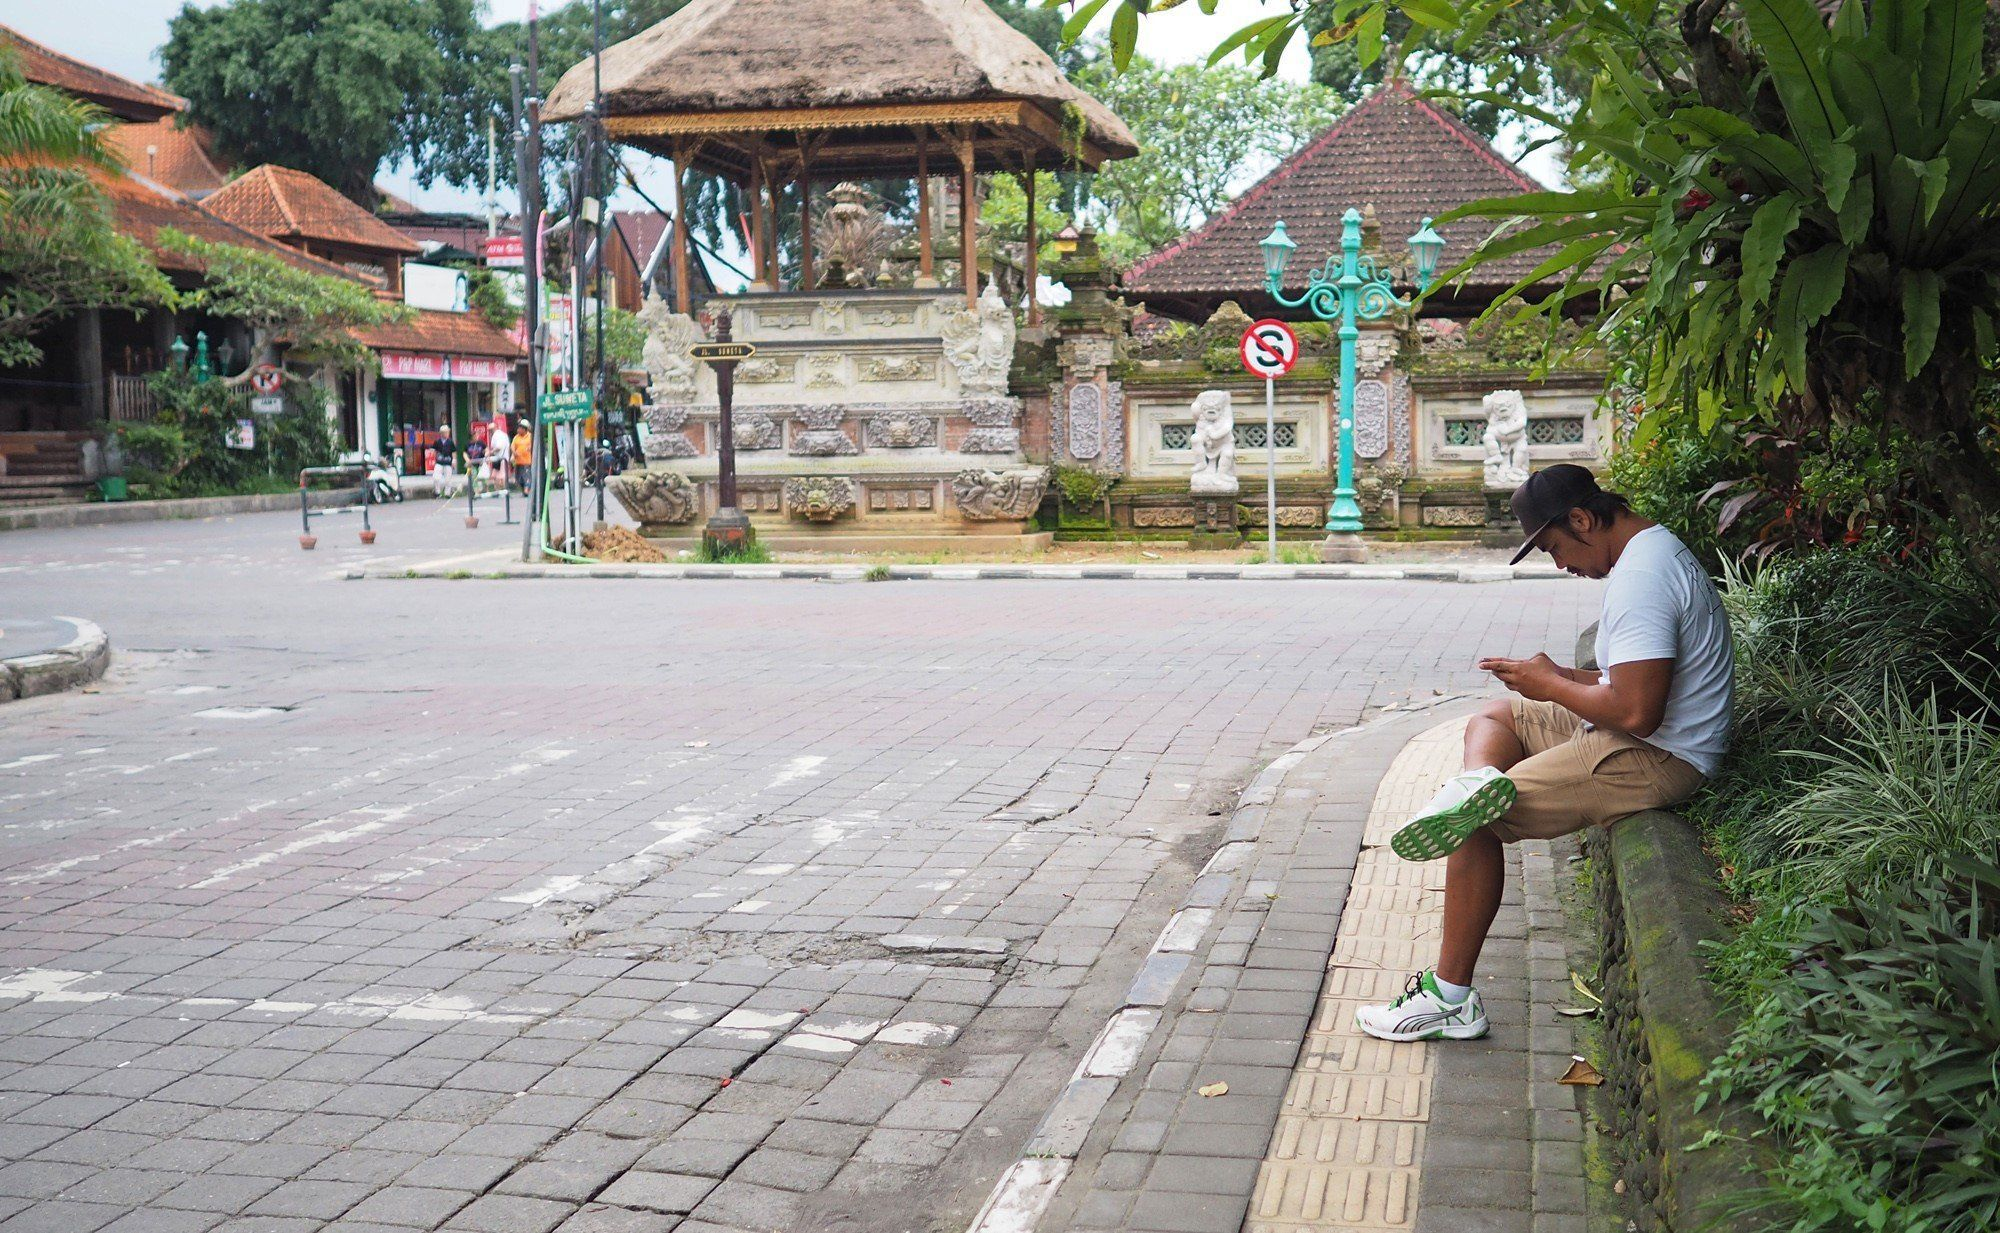 Bali to Switch Off Internet Services for 'Sacred Day of Reflection'